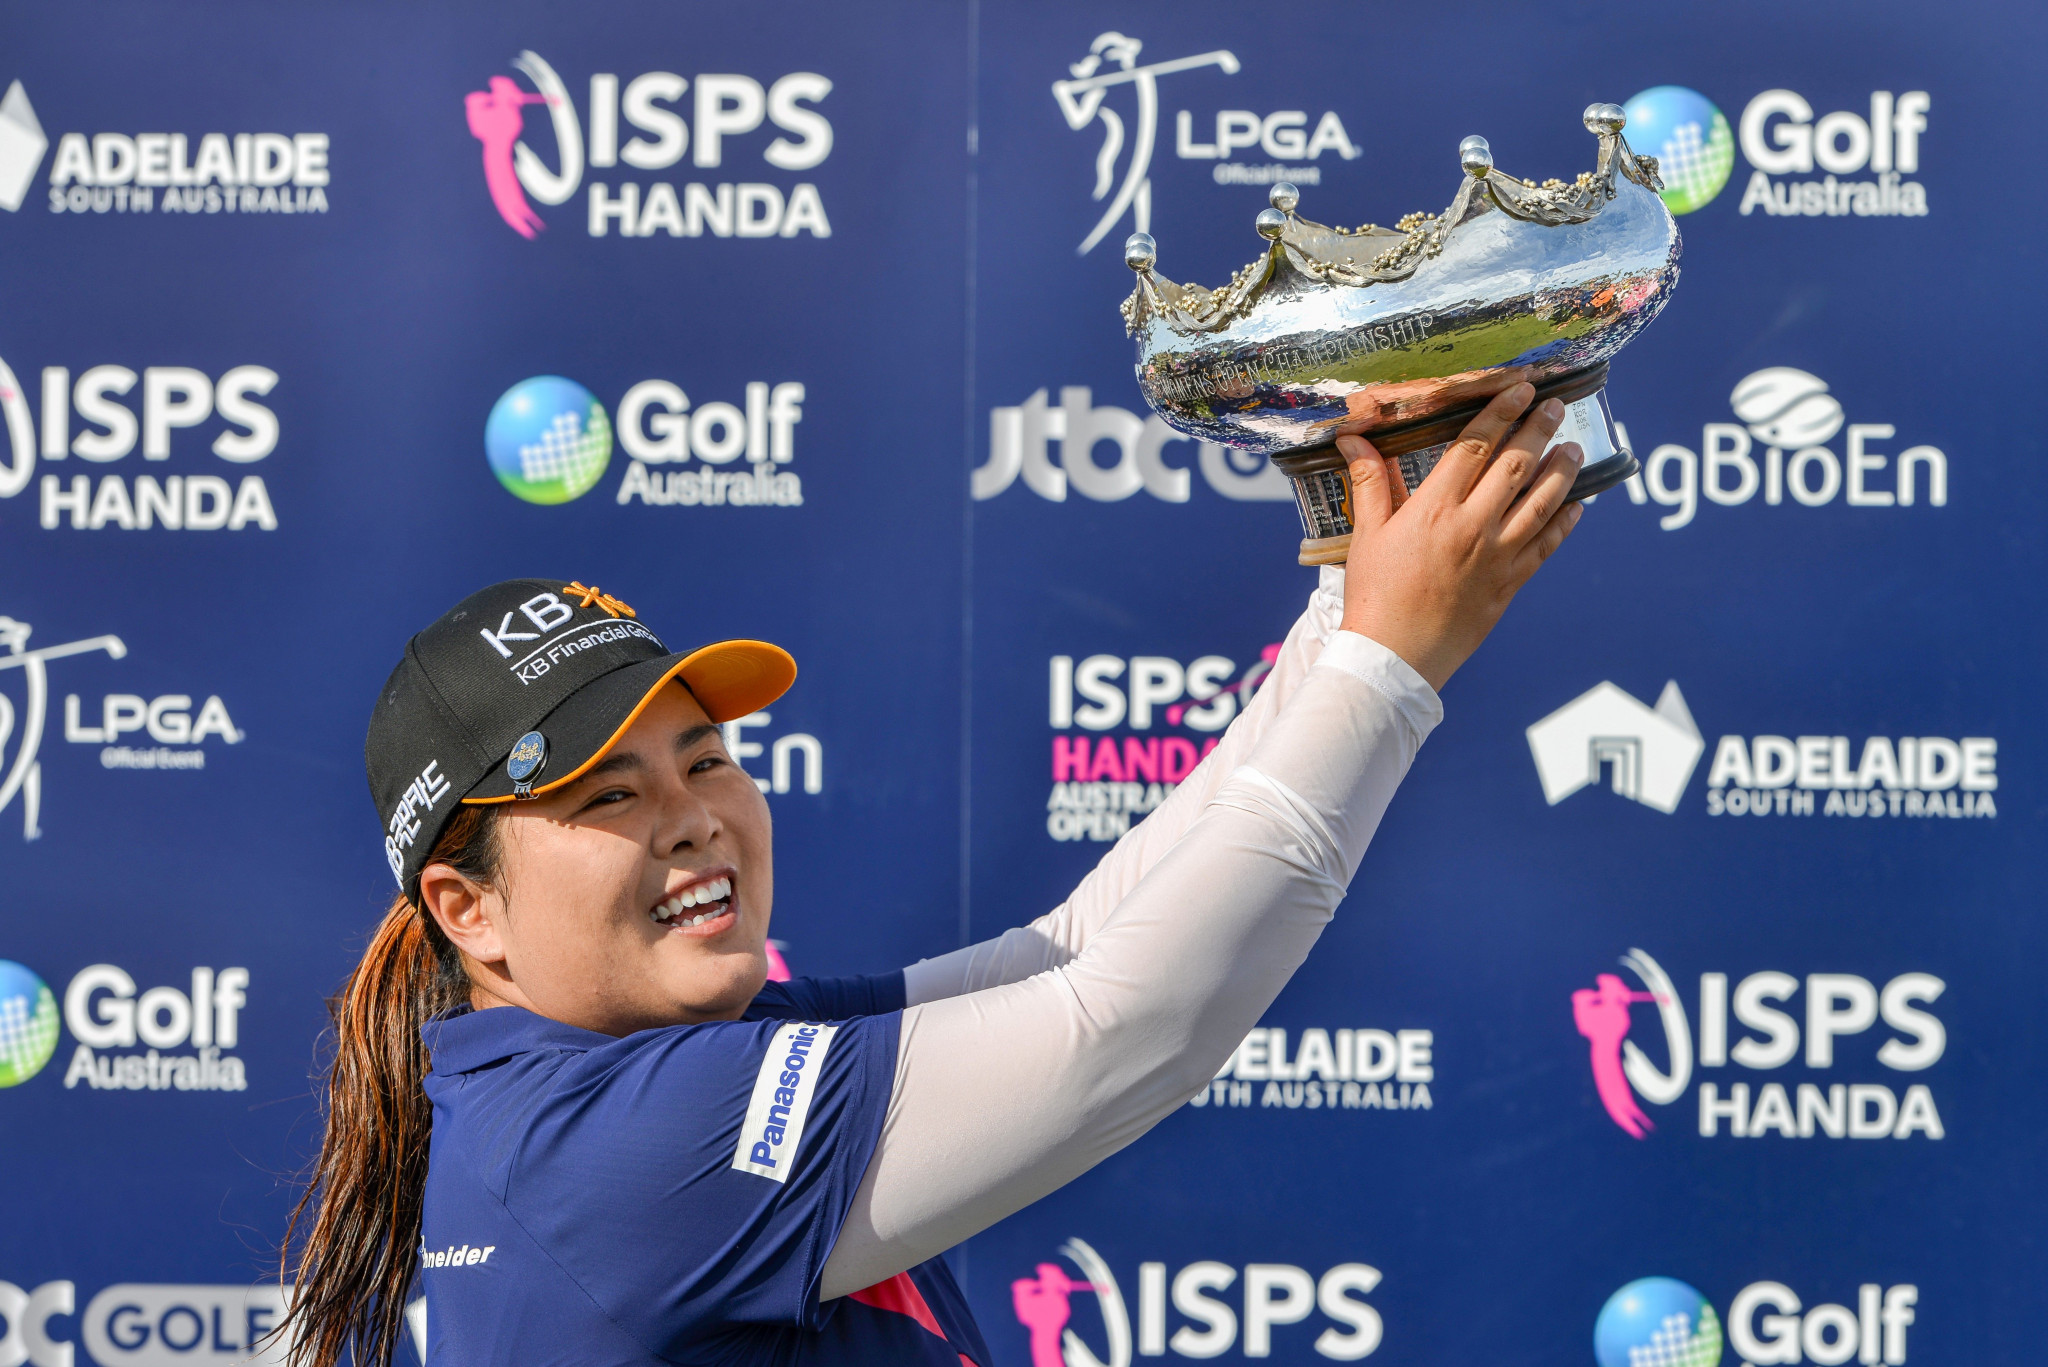 Park Inbee of South Korea - also the Olympic champion - will not be able to defend her Australian Open title in 2021 after the event was cancelled due to COVID-19 concerns ©Getty Images